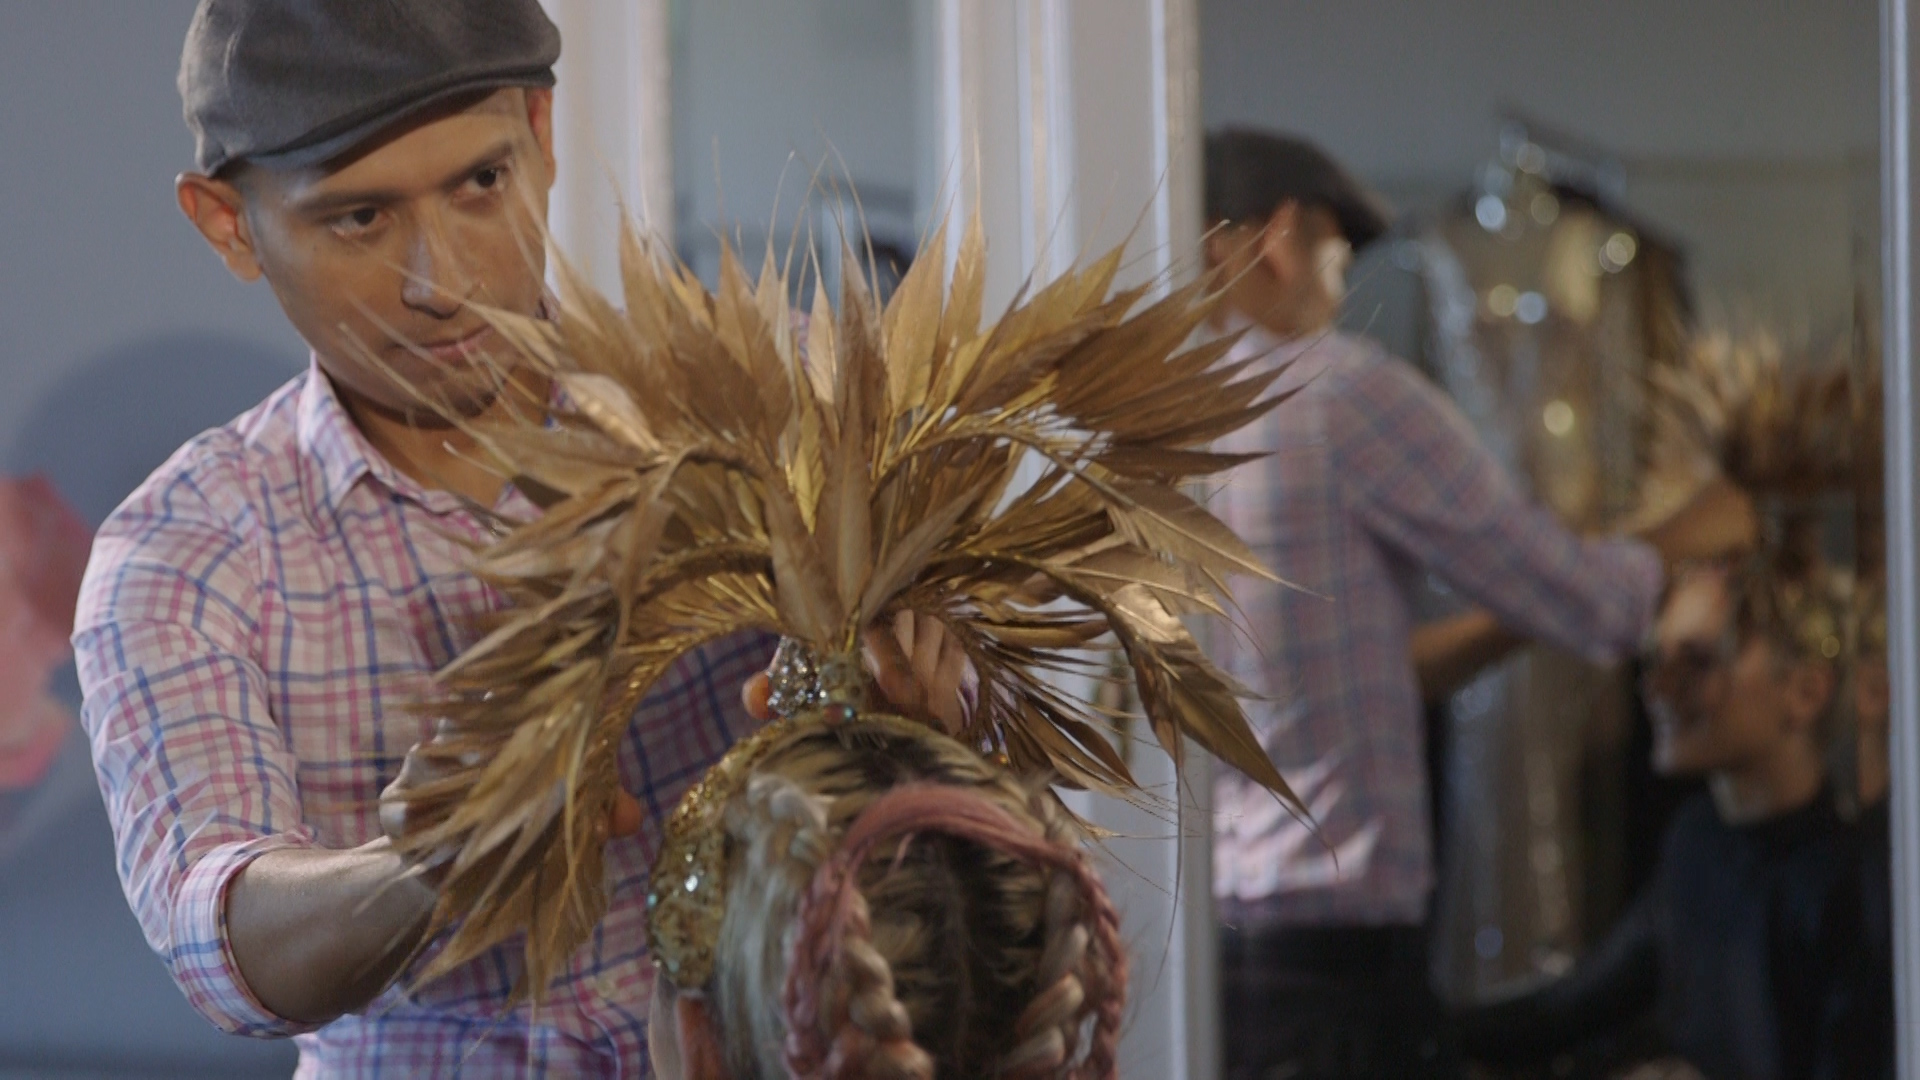 Hats off to ARturo Rios! - Rios discovered his true calling while working in a hat maker's shipping department.Season 2, Episode 2Originally aired 10 October 2017